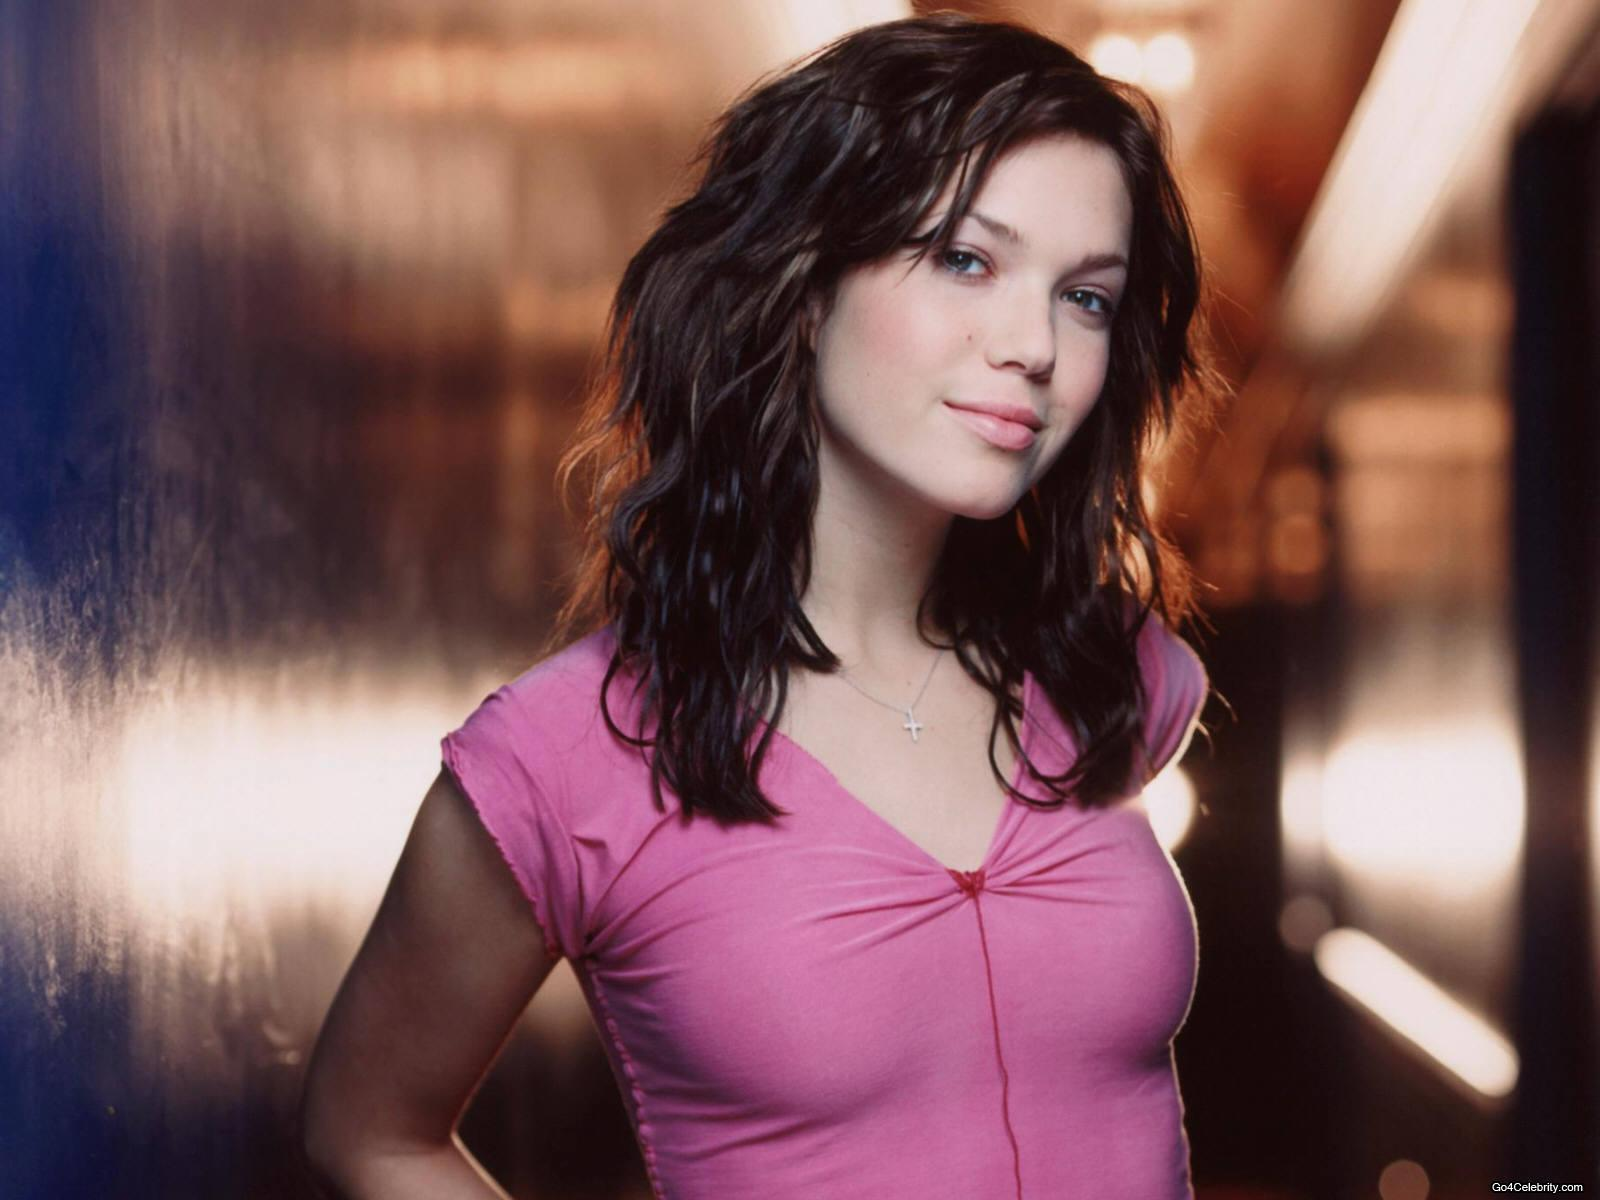 Mandy moore makeup mandy moore barefaced beauties celebrities without